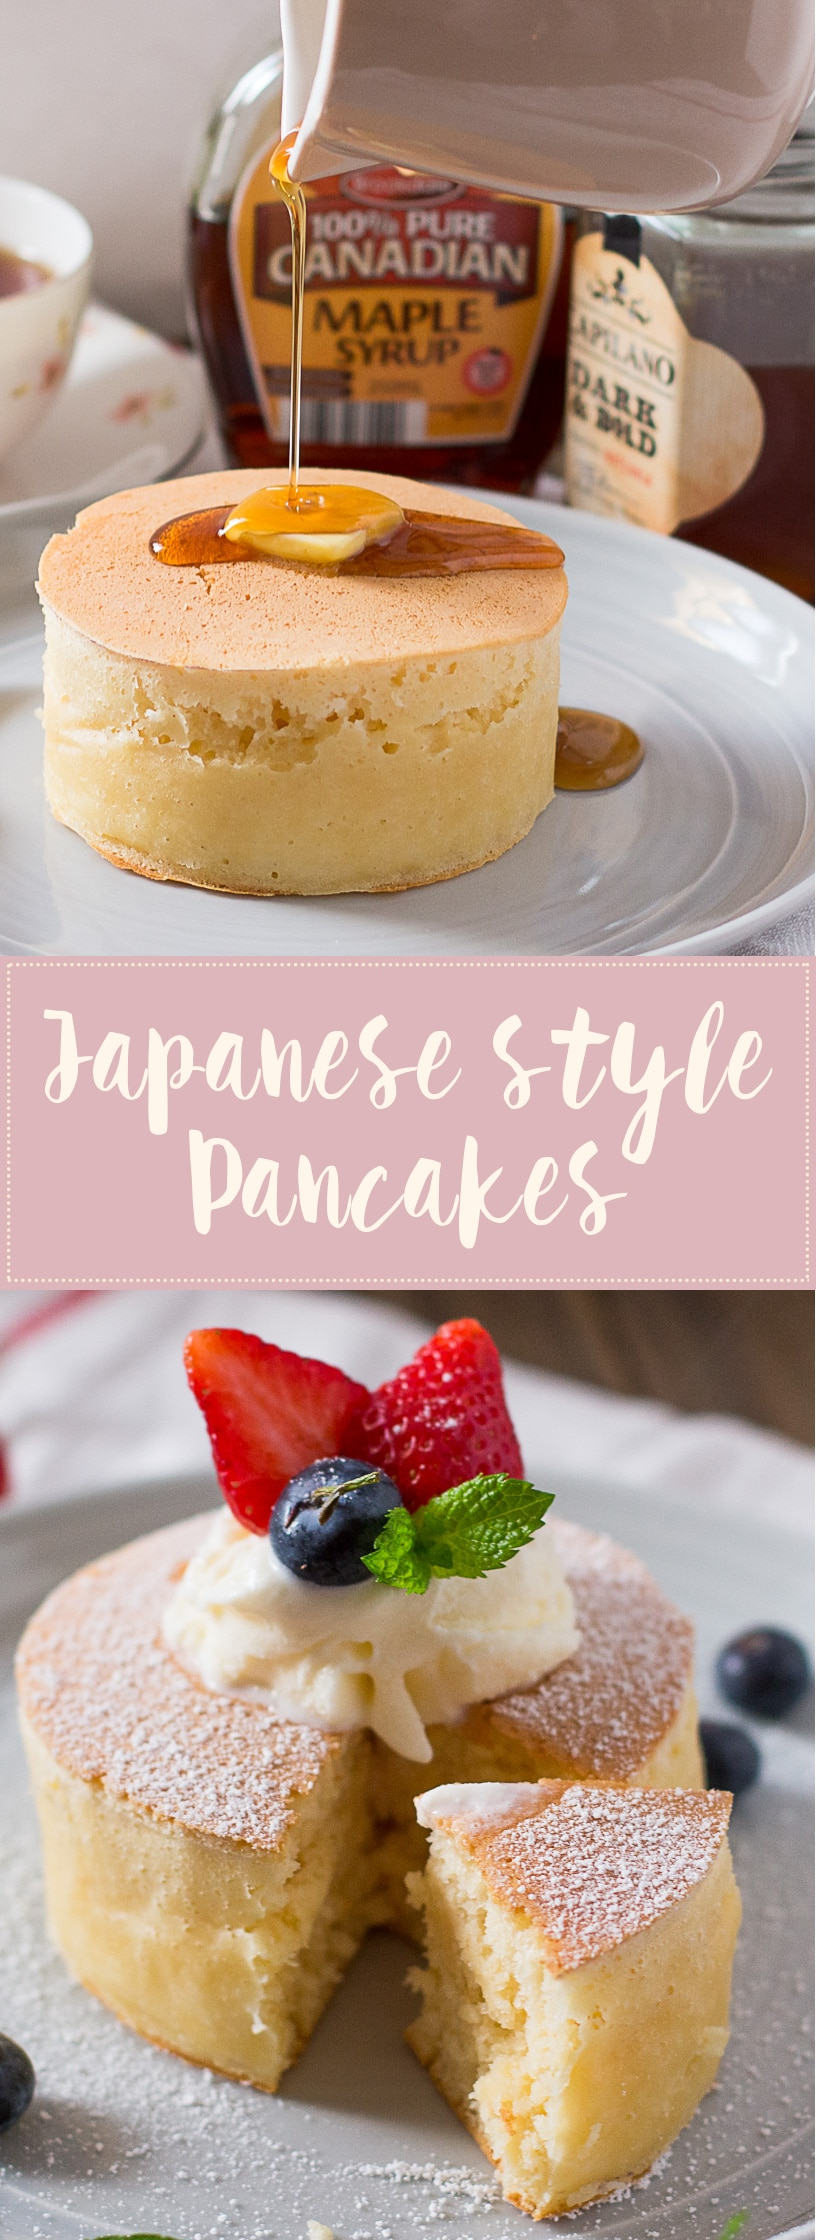 Extra Thick And Fluffy Japanese Style Pancakes Chopstick